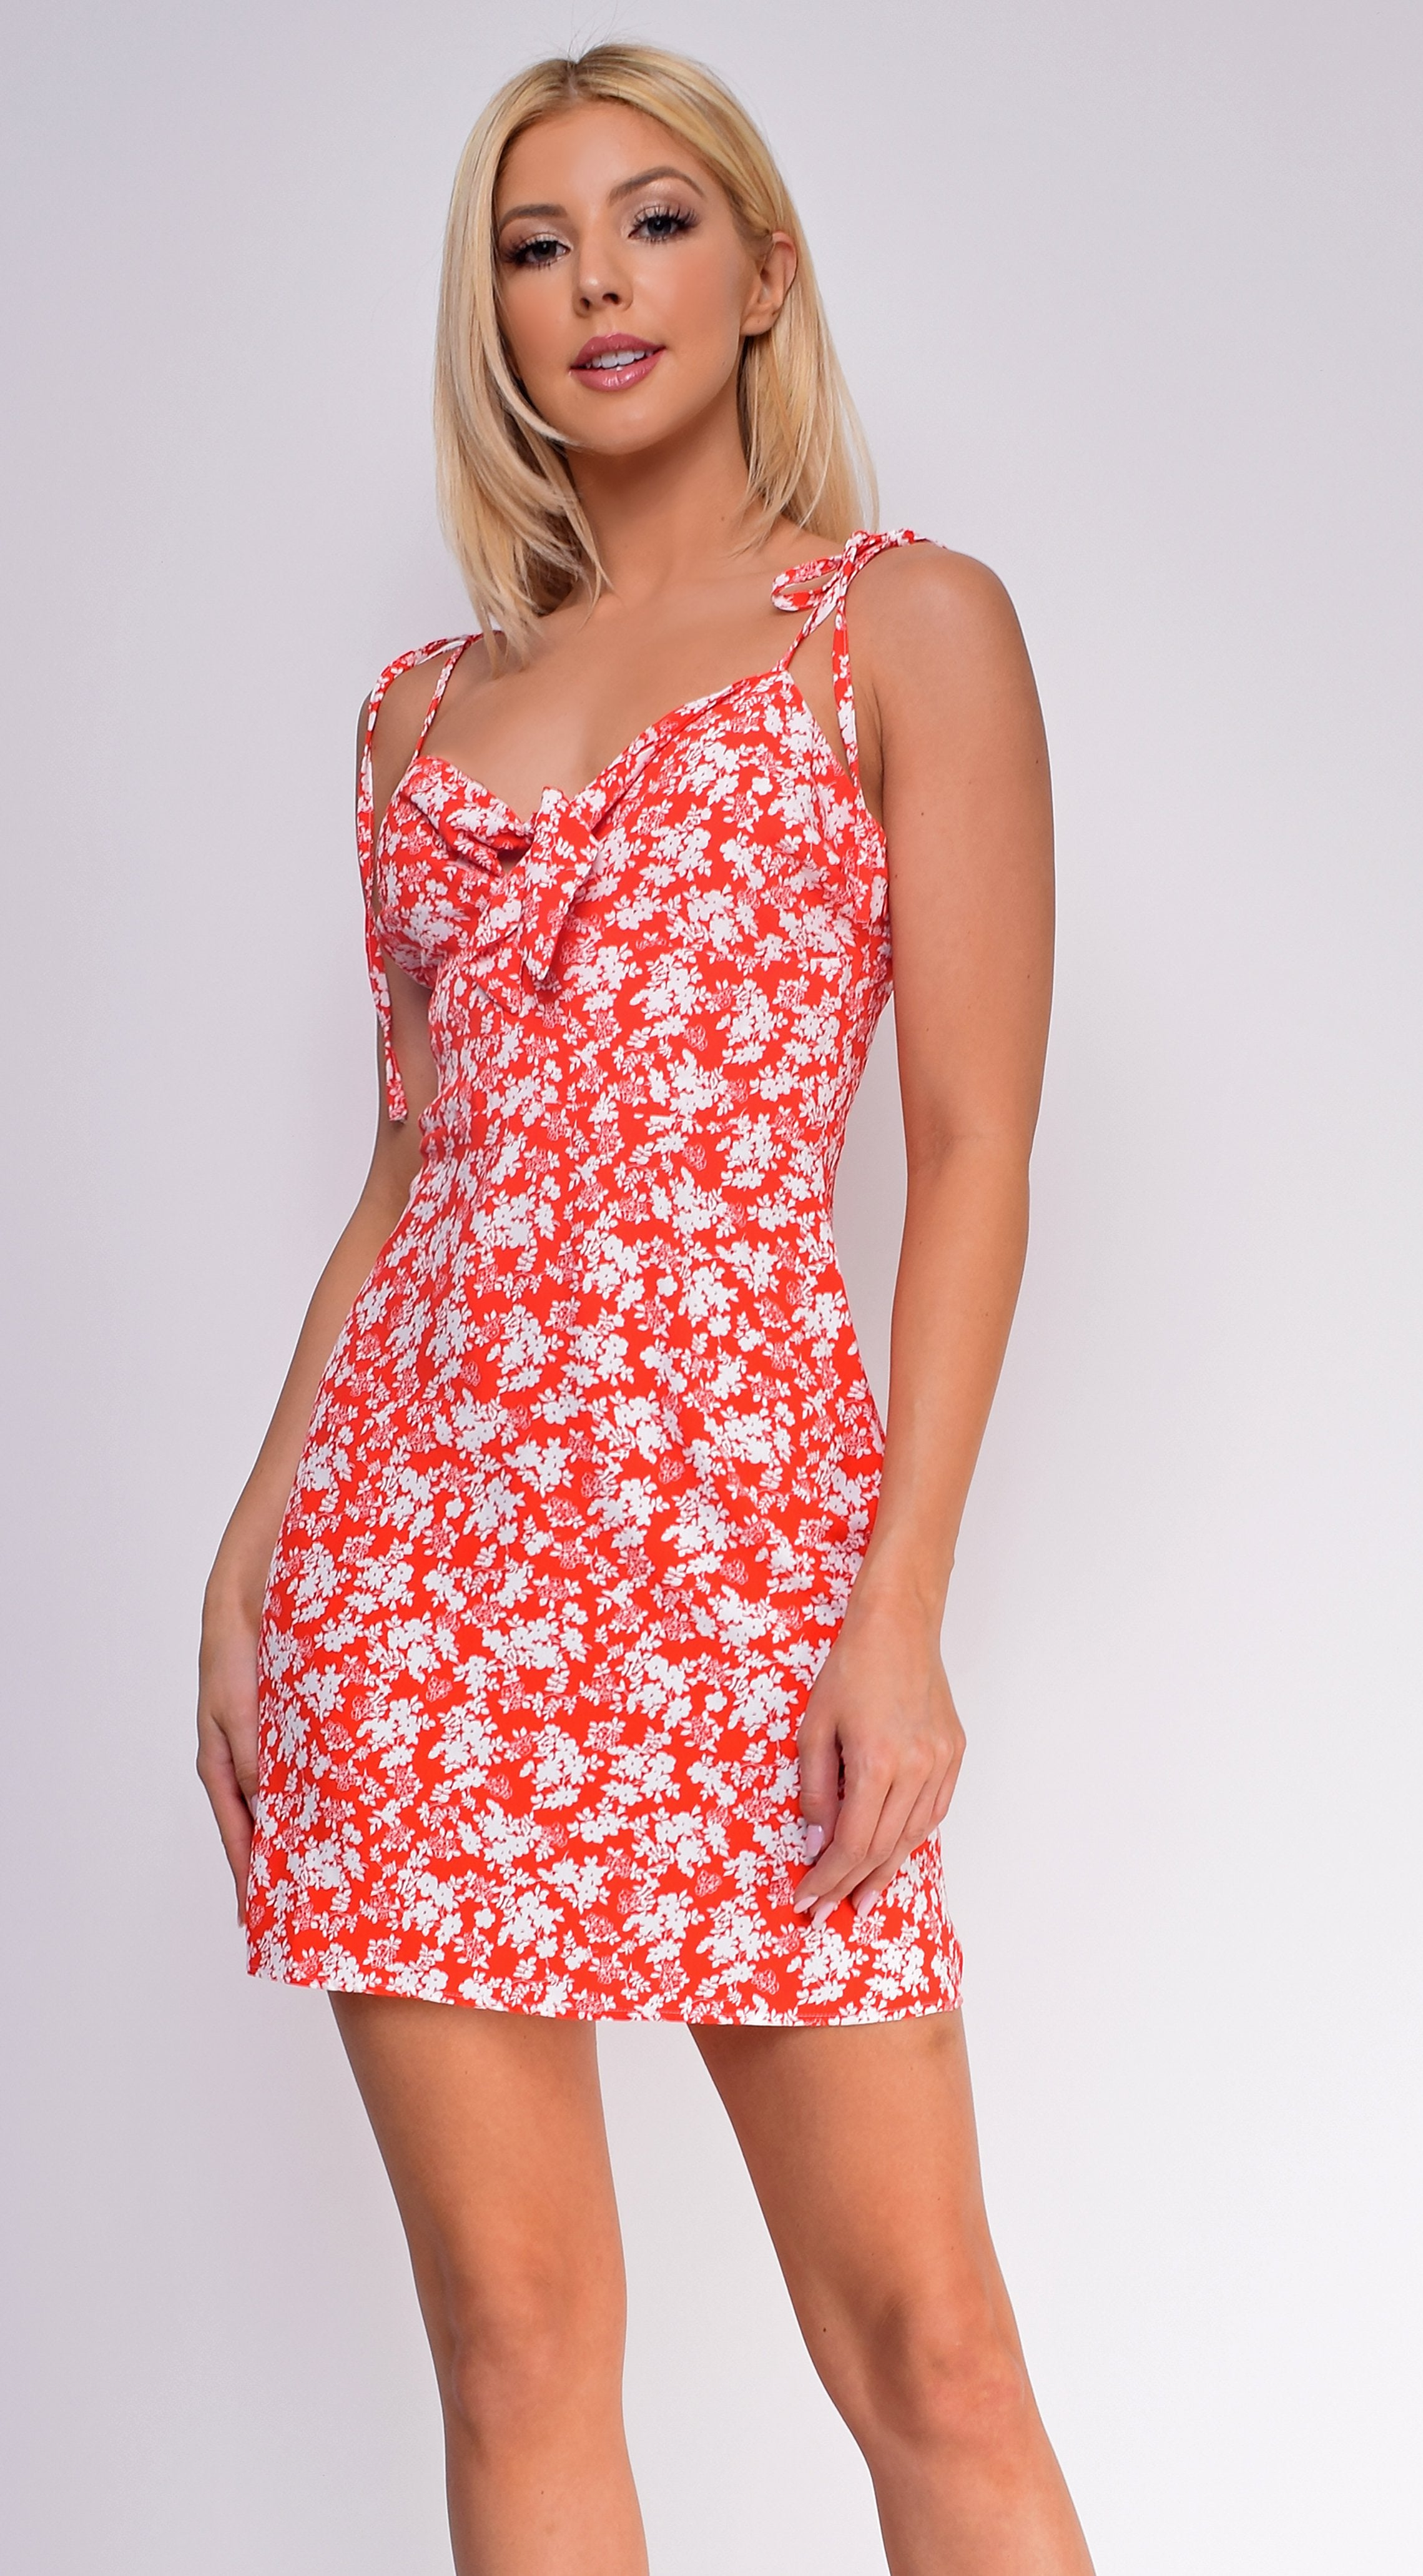 Marigold Red White Floral Dress